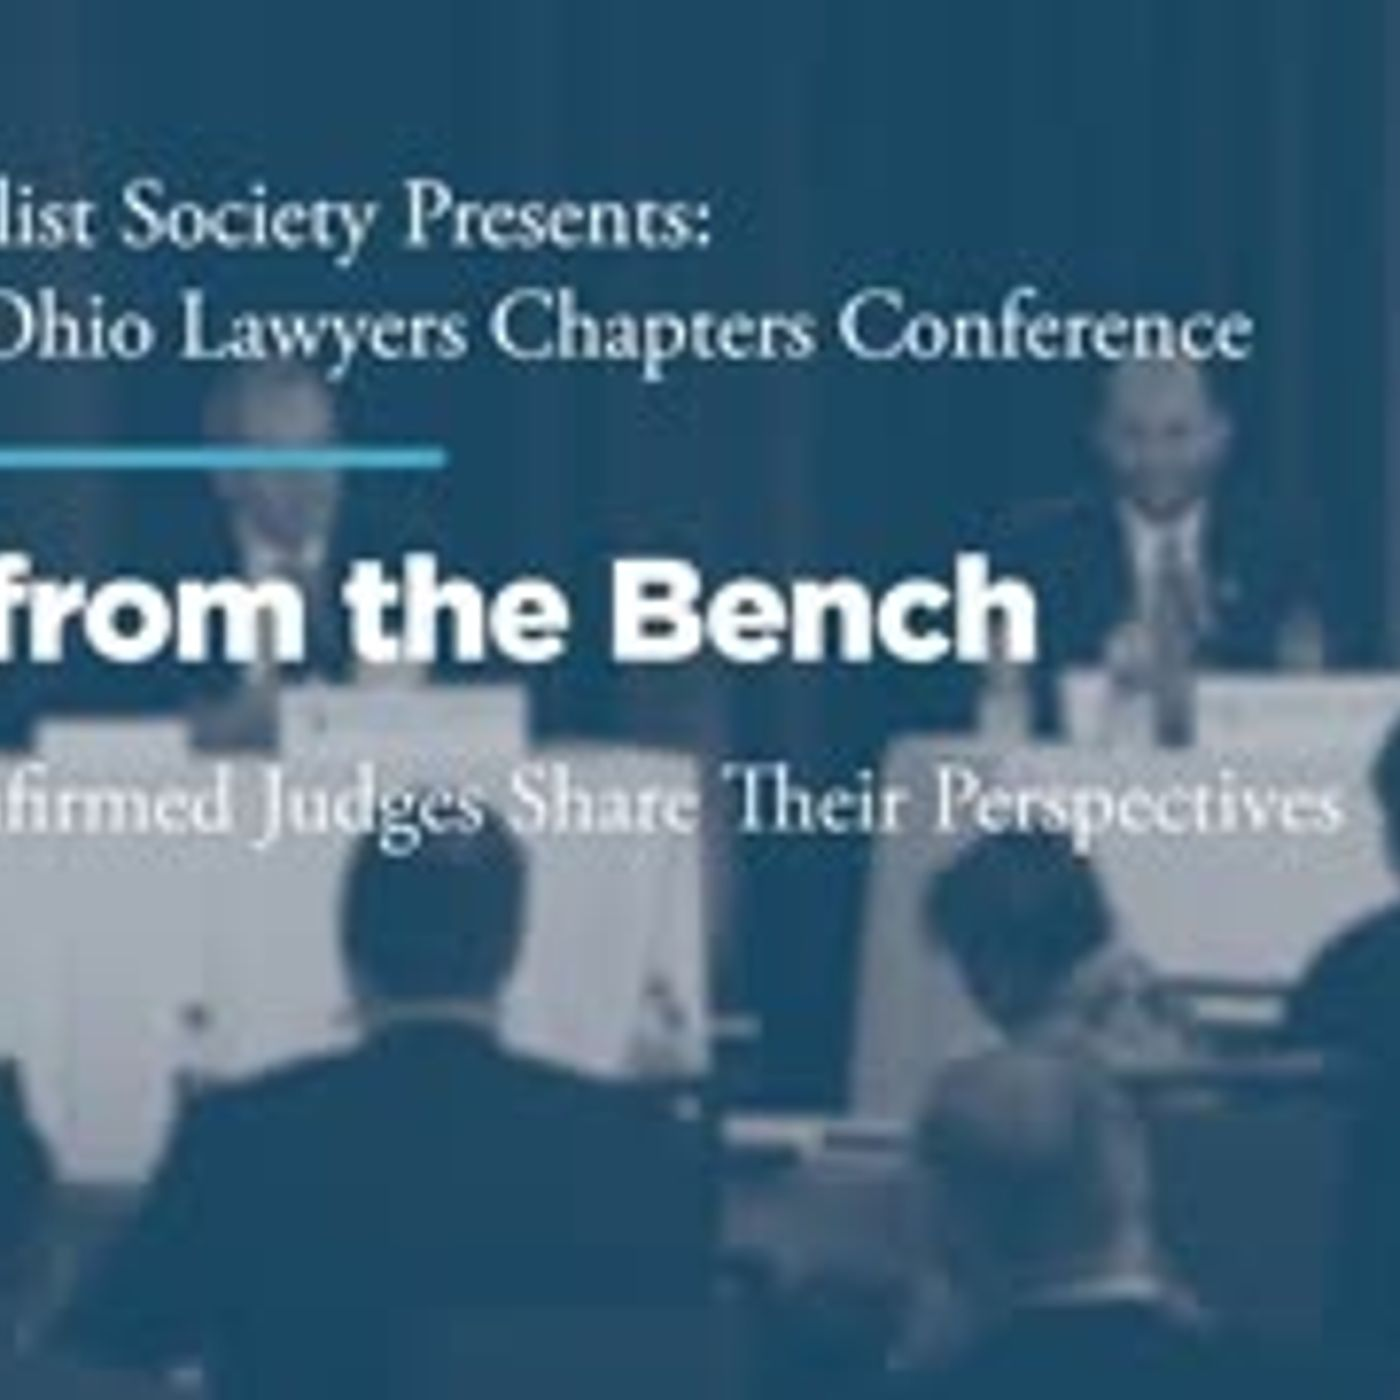 View From The Bench: Newly Confirmed Judges Share Their Perspectives